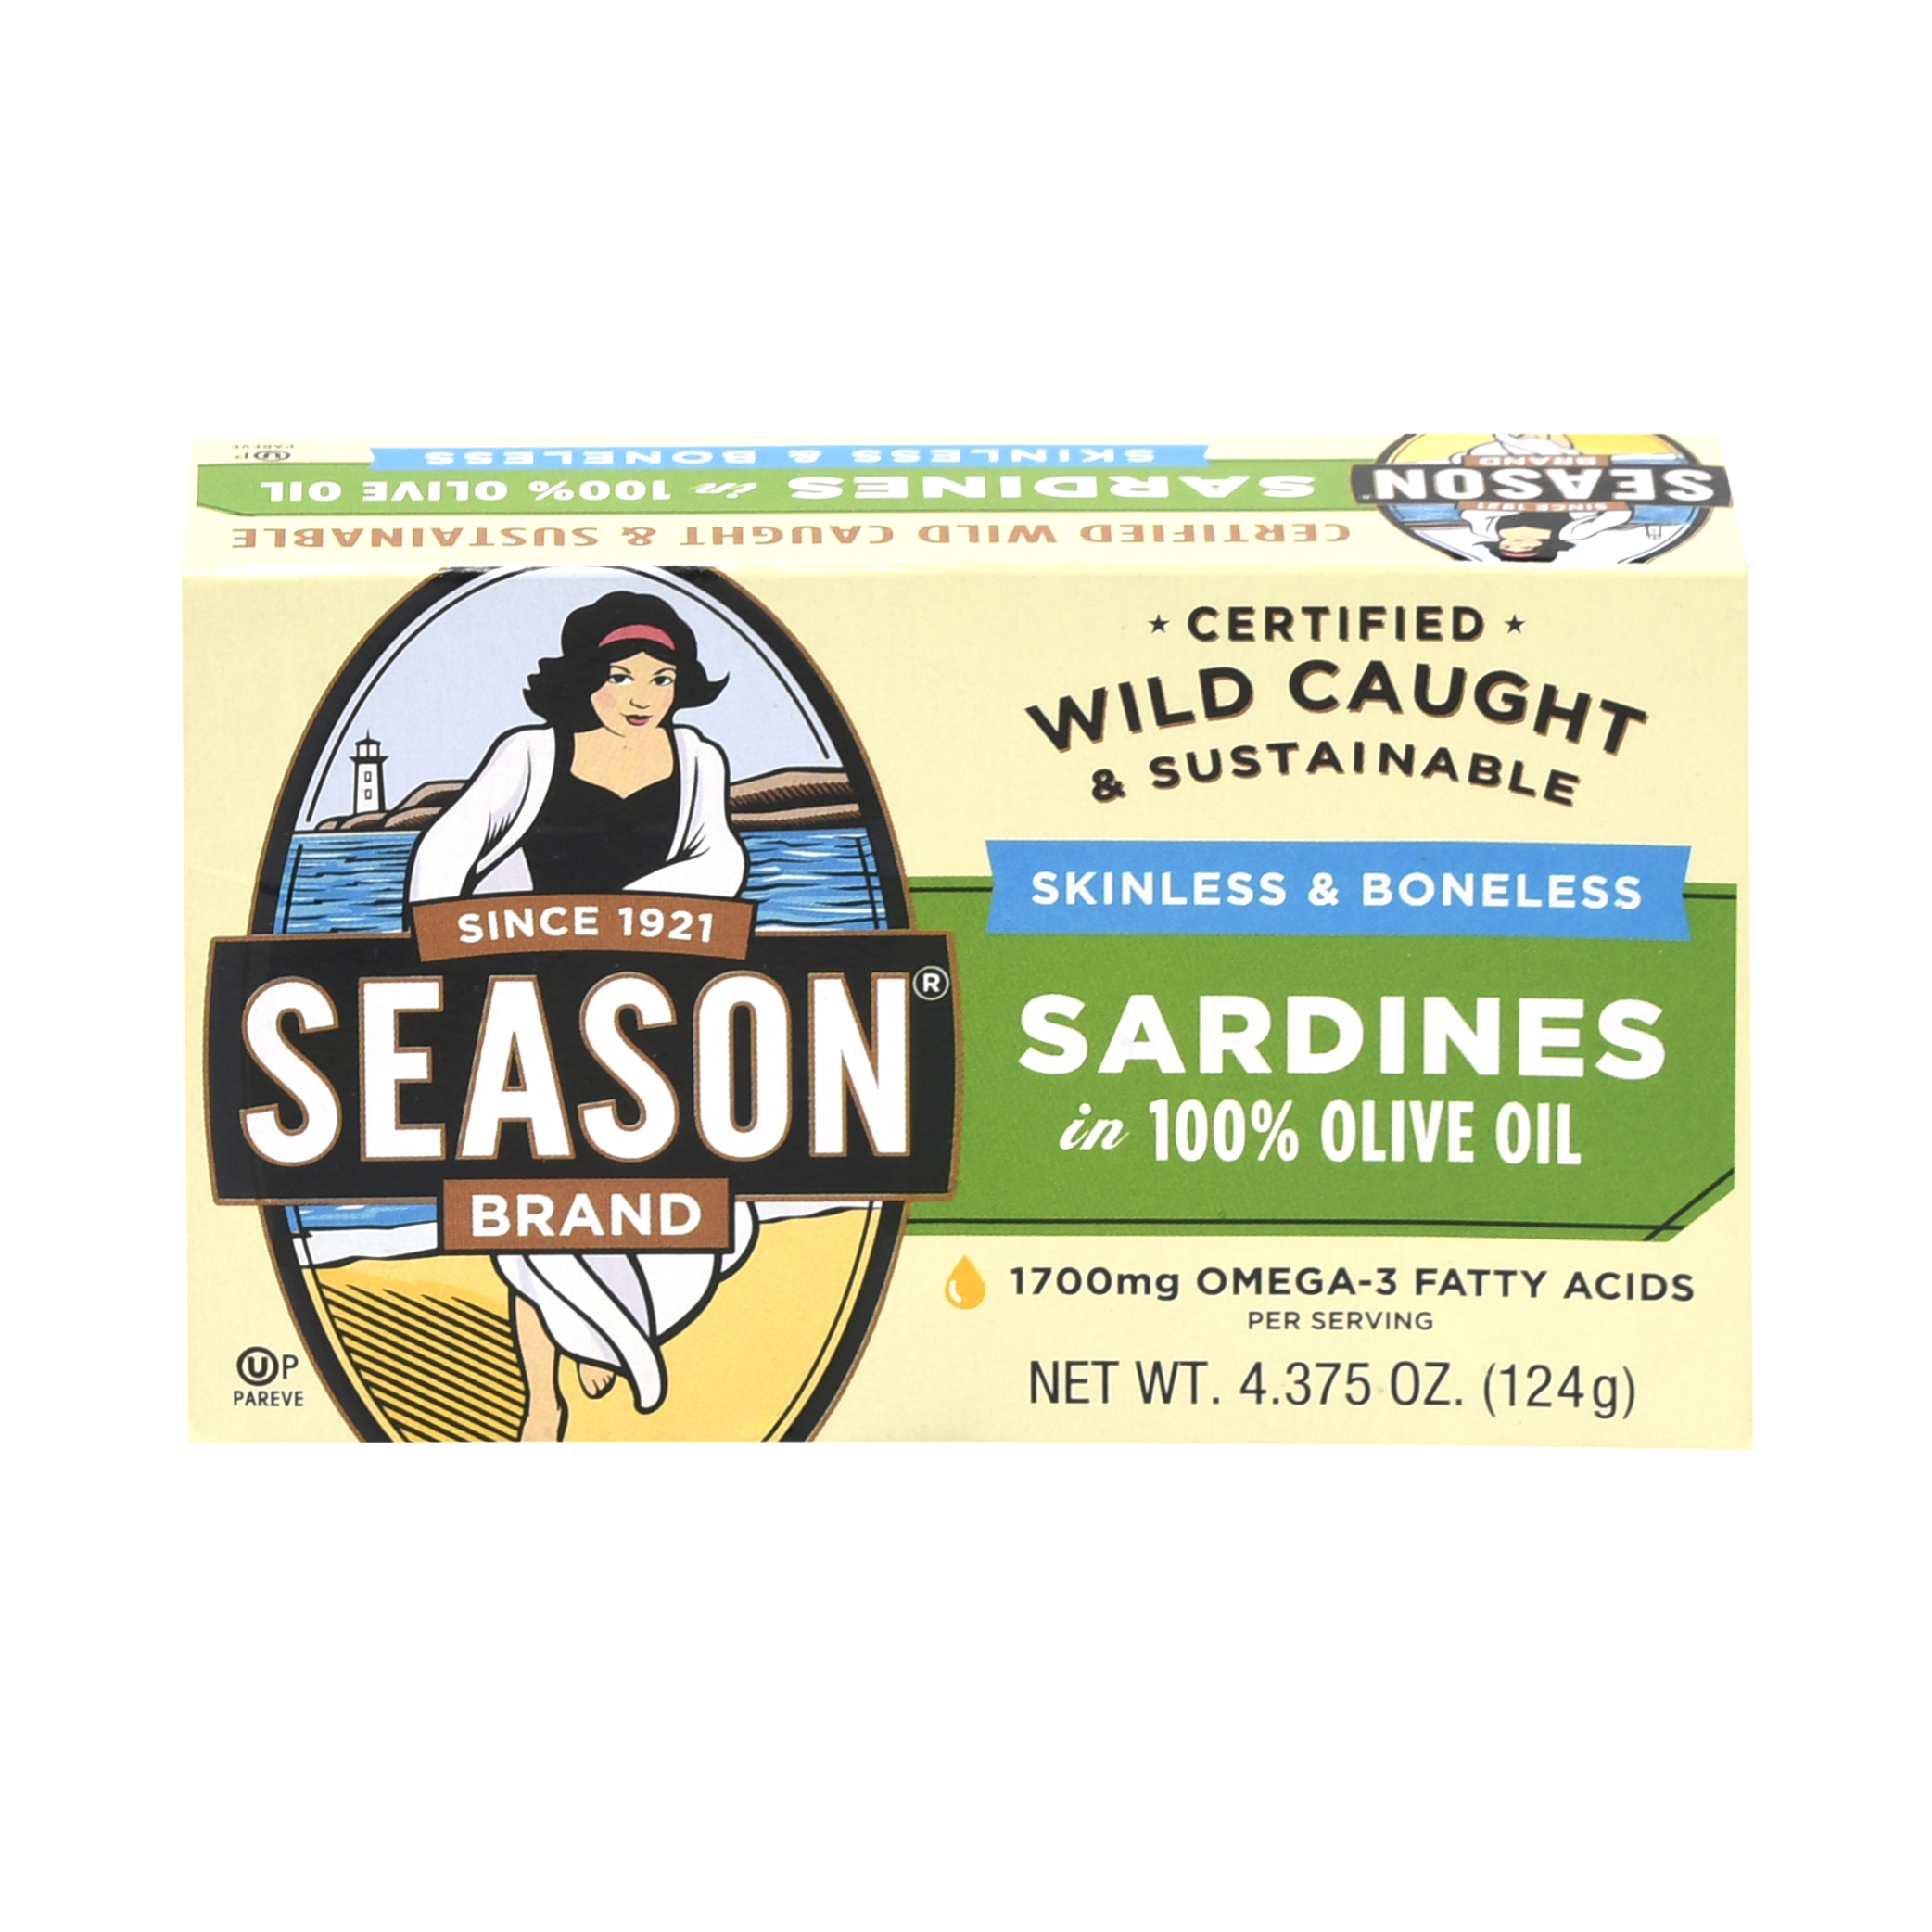 Season Brand Canned Imported Sardines, Skinless & Boneless, 4.375 Oz